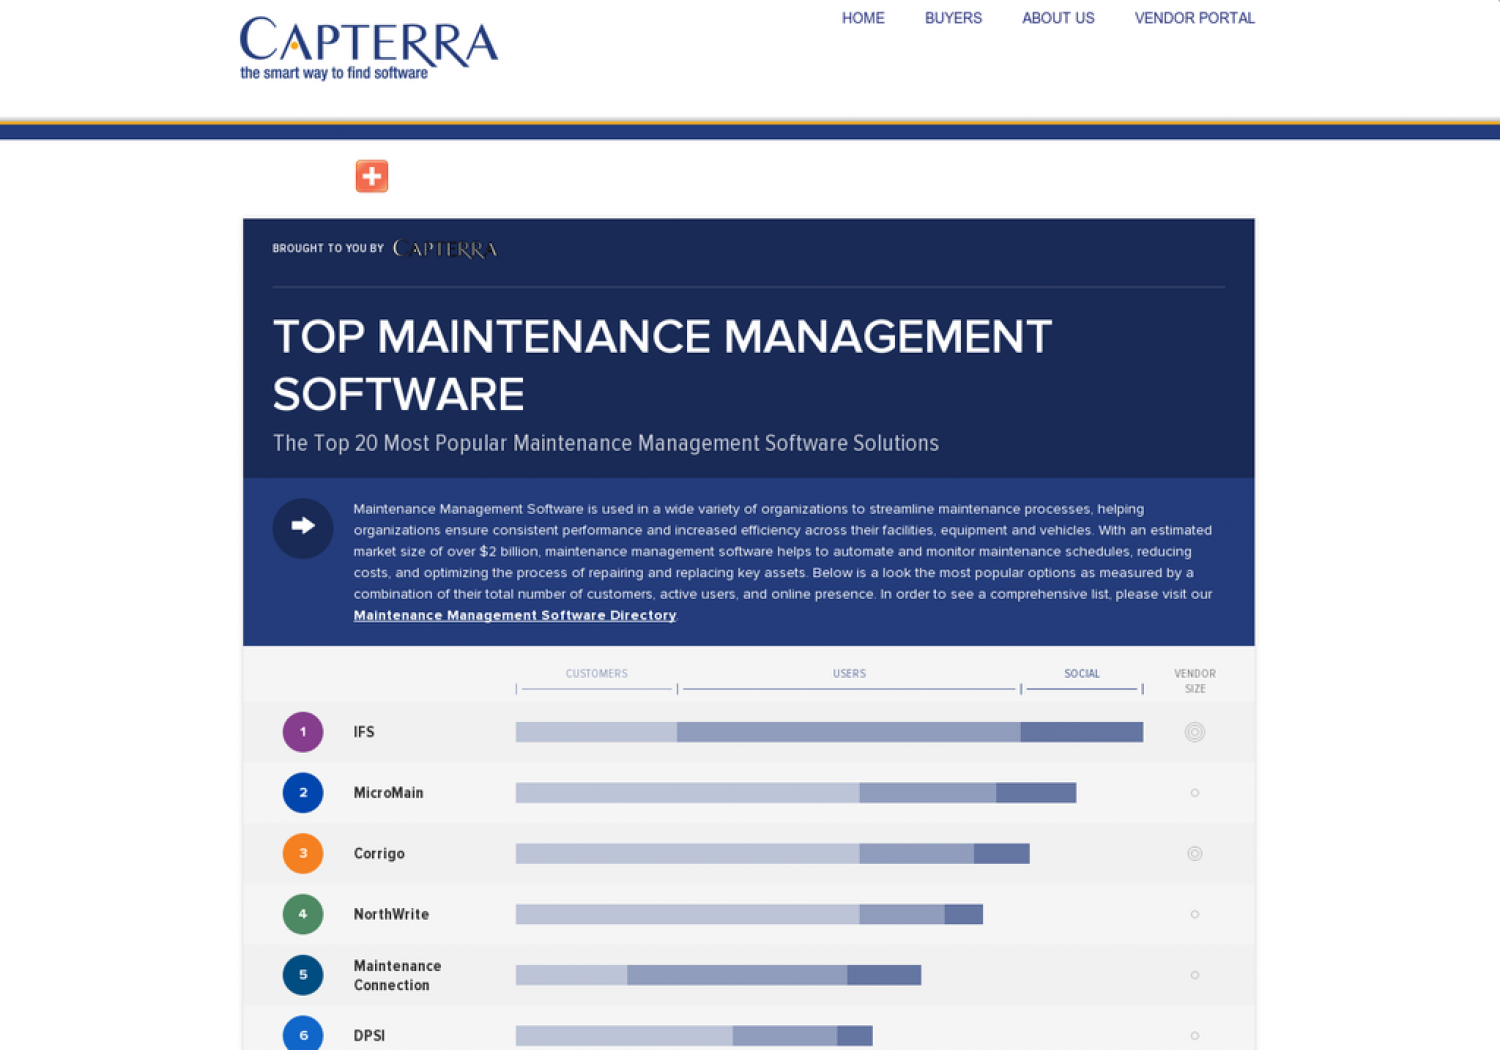 Top 20 Most Popular Maintenance Management Software Infographic